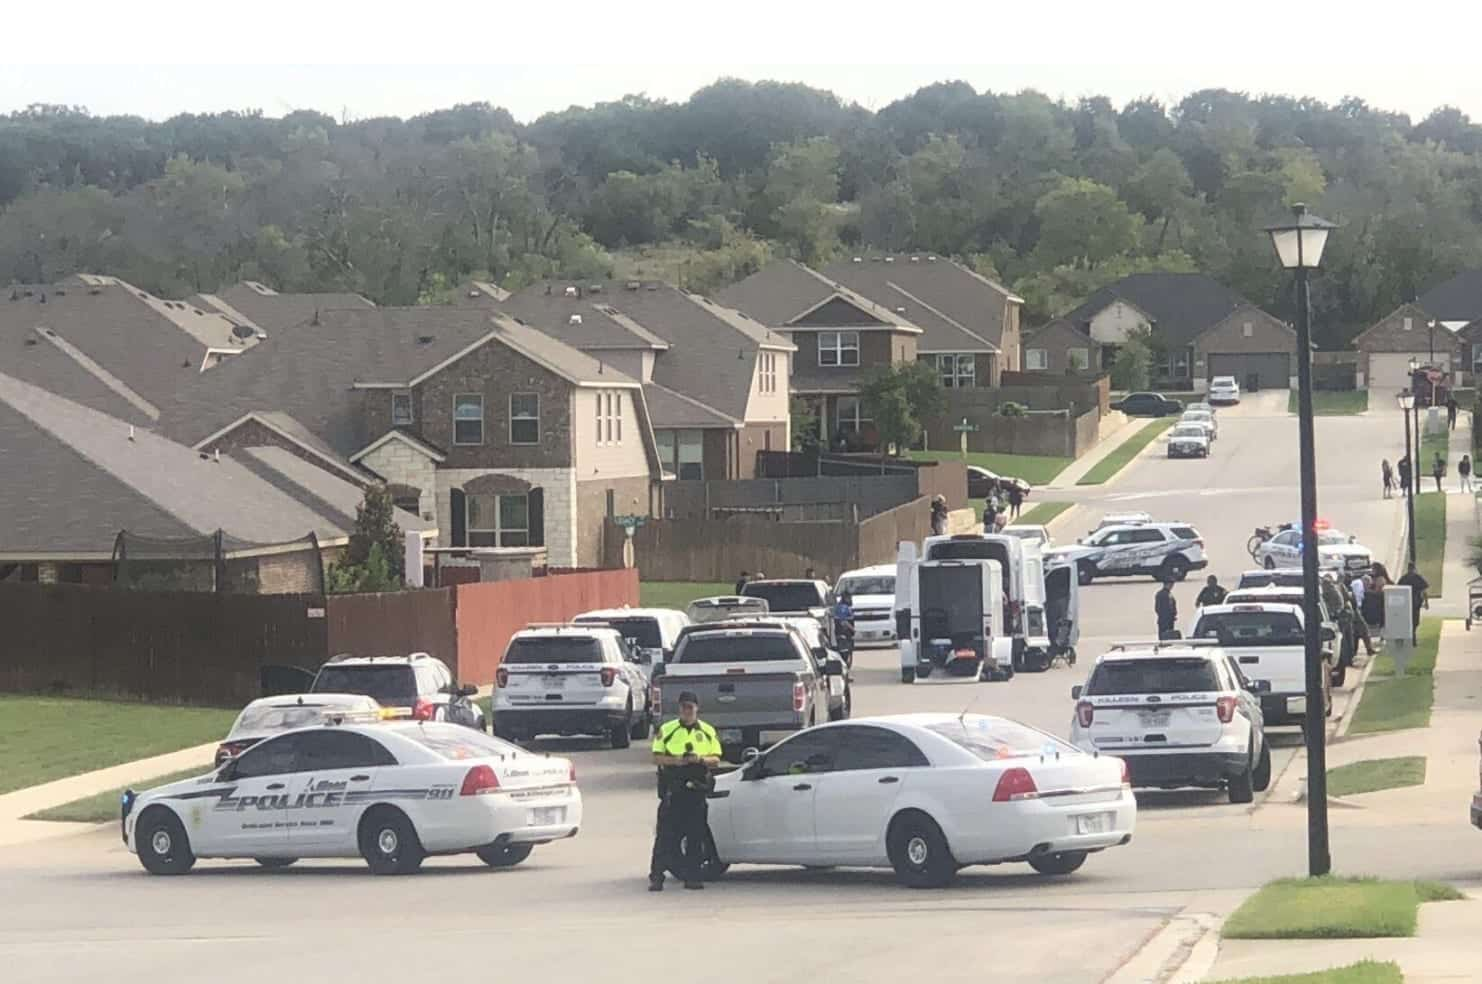 On Monday afternoon, Killeen Police Department officers were dispatched to the 2600 block of Legacy Lane, in reference to a report of a person with a firearm and shots fired. The ensuing standoff, during which the police drone was shot at, has the suspect facing both a felony and a misdemeanor charge. Police drone shot at during standoff in Killeen, Texas A witness told police that the suspect, 41-year-old Fredrick Eldon Ralls was emotionally upset. He has been charged with deadly conduct and discharging a firearm in the city — a felony and a misdemeanor, respectively, according to two separate criminal complaint affidavits, reports the Killeen Daily Herald. Before the police arrived two shots had been fired in the direction of a fence in the backyard of a residence. According to two witnesses, Ralls had pointed a gun at them and fired two shots in the ground warning them to 'stay back.' The KPD SWAT was activated and police officers had a lengthy conversation with Ralls. The standoff with the police lasted nearly 2 1/2 hours before Ralls was taken into custody. No injuries were reported. According to KPD Chief Charles Kimble said at least one shot was fired before police arrested the man. KPD body camera footage shows Ralls shooting his firearm in his backyard in an attempt to shoot down a KPD drone. Ralls' bond for the felony and misdemeanor charges have been set at $100,000 and $5,000, respectively. Shooting down an aircraft is a federal crime, whether it is a manned or unmanned aircraft. Over the last few years, we have seen a number of cases in which a drone was being shot at. However, we have yet to see anybody being prosecuted under federal law for any of these offenses. Flying drones as a career? If you want to turn your hobby into your career, practice how to fly your drone safely, and learn what it takes to get your Part 107, be sure to check out the excellent training modules from The Drone U. Stay in touch! If you'd like to stay up to date with all the latest drone news, scoops, rumors, and reviews, follow us on Twitter, Facebook, YouTube, Instagram, or... Subscribe to our Daily Drone News email.* Submit tips If you have information or tips that you would like to share with us, feel free to submit them here. Support DroneXL.co: You can support DroneXL.co by using these links when you make your next drone purchase: Adorama, Amazon, B&H, BestBuy, eBay, DJI, Parrot, and Yuneec. We make a small commission when you do so at no additional expense to you. Thank you for helping DroneXL grow! FTC: DroneXL.co uses affiliate links that generate income. * We do not sell, share, rent out or spam your email, ever. Our email goes out on weekdays around 5:30 p.m.